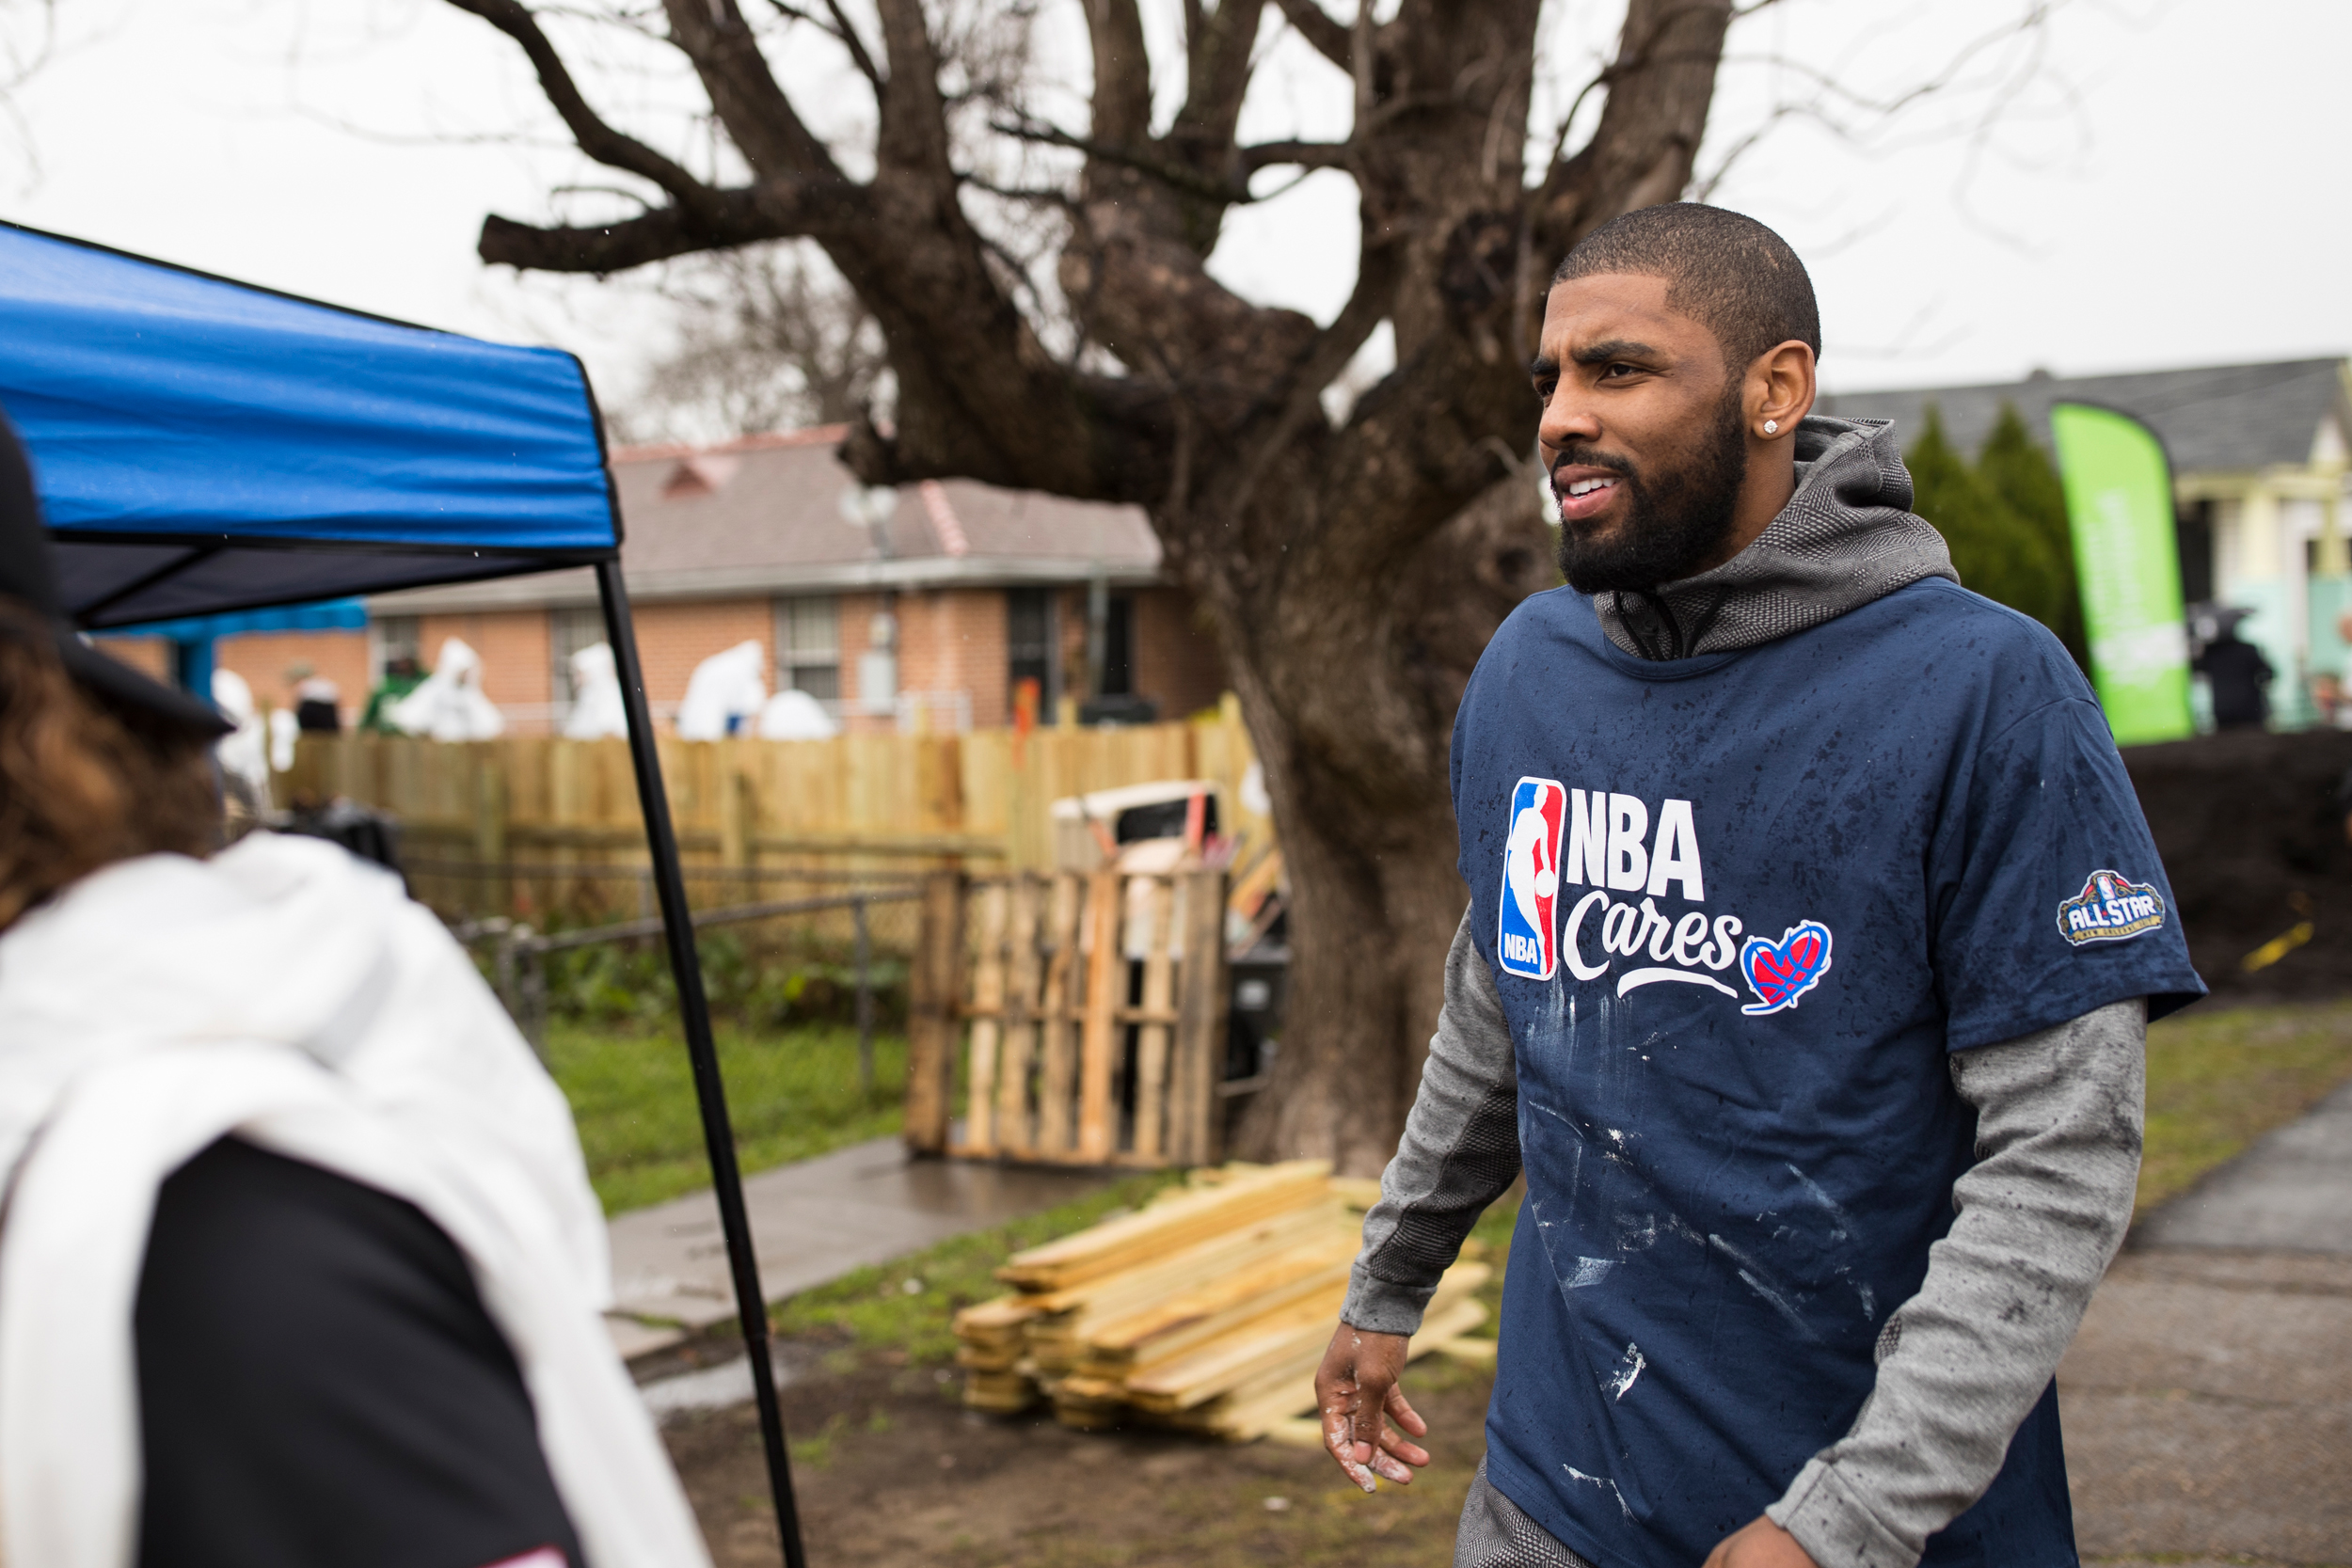 Kyrie Irving exits a volunteer event helping to refurbish homes and plant a community garden in New Orleansí Hollygrove-Dixon neighborhood. NBA players volunteer their time to help better the New Orleans community through the NBA Cares program.